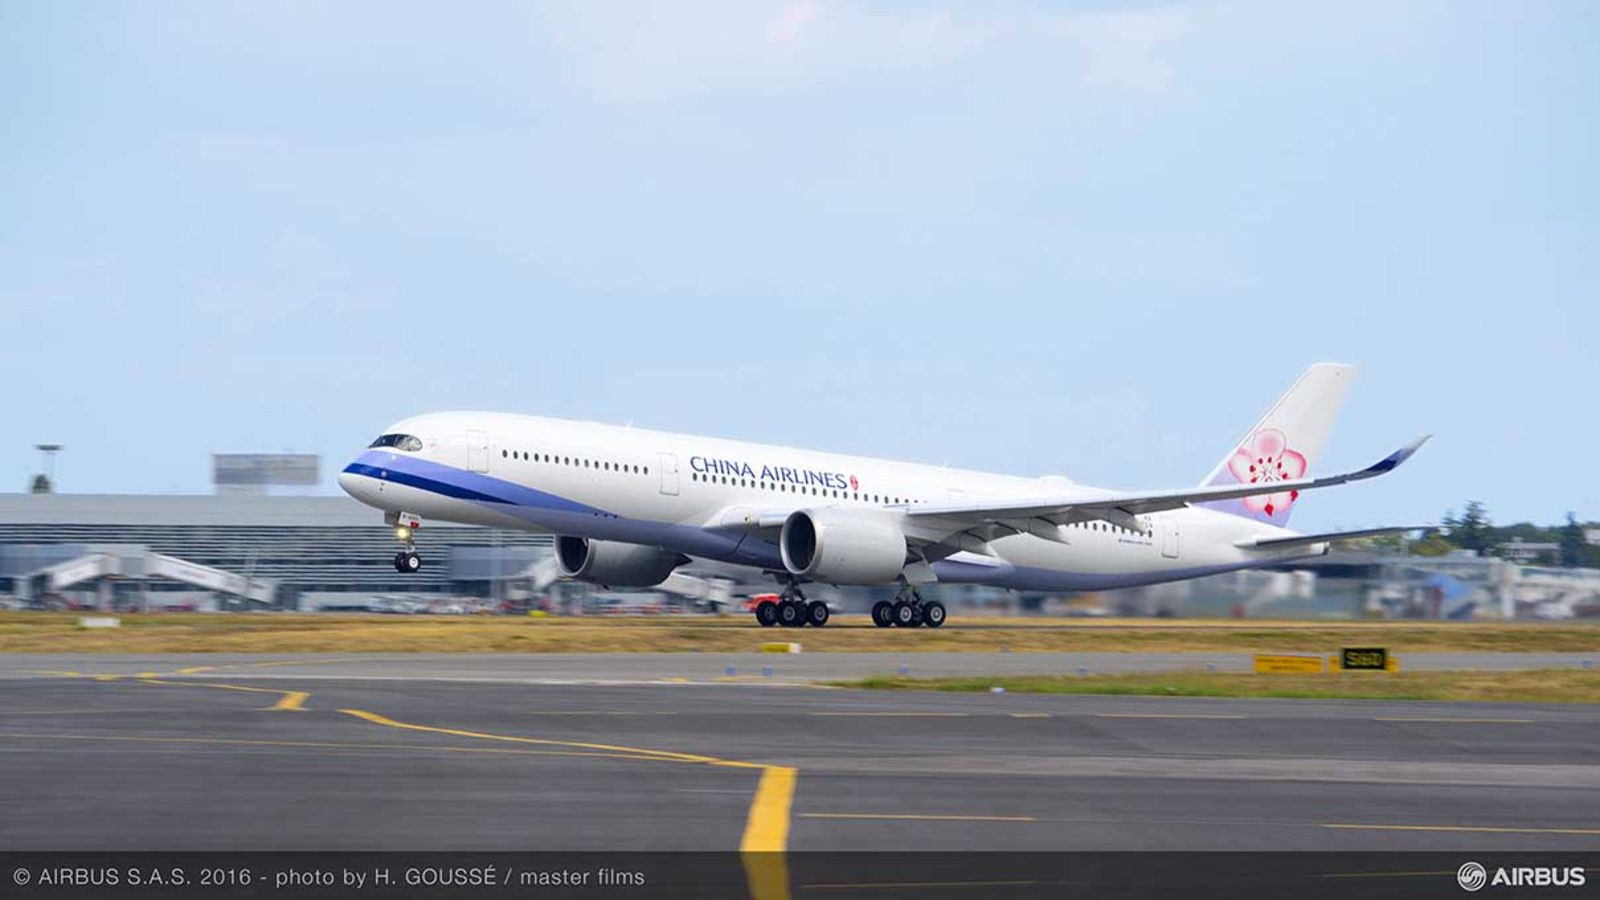 1600x1200_1475233678_a350-900_china_airlines_1.jpg